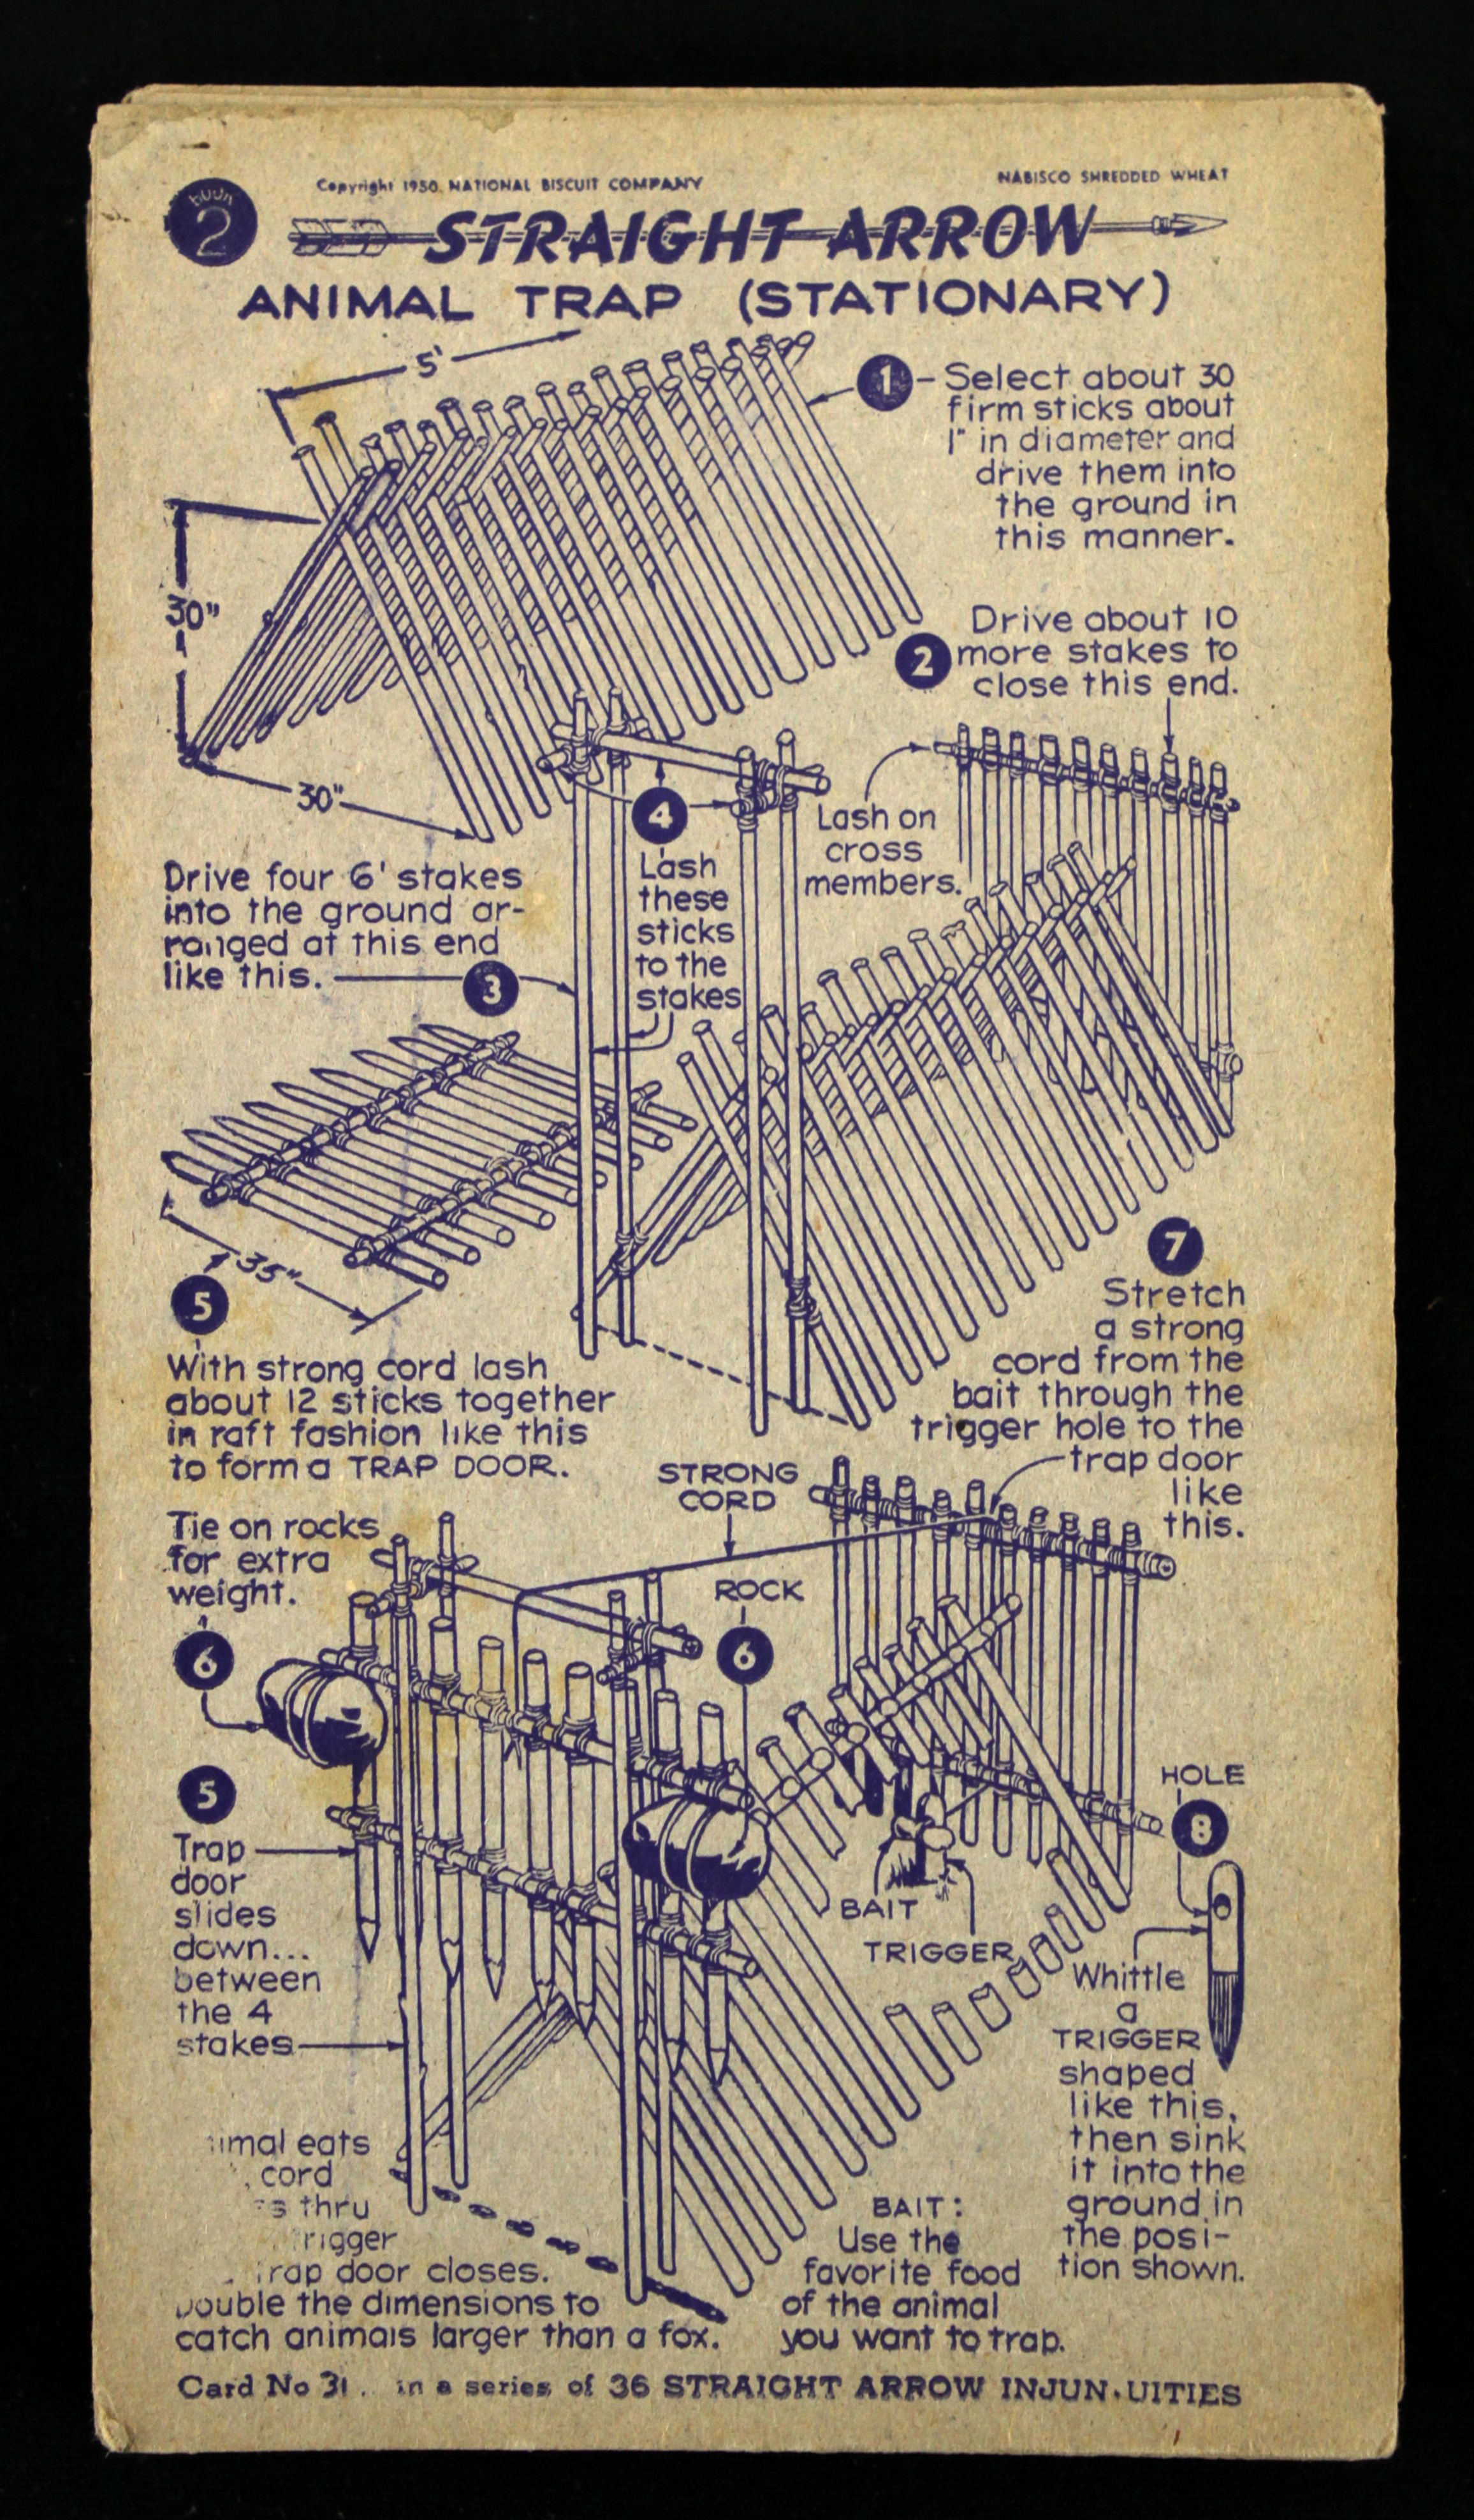 Lot Detail 1950 Straight Arrow Nabisco Shredded Wheat Insert W 30 Trapdoor Schematic Of 36 From Book 2